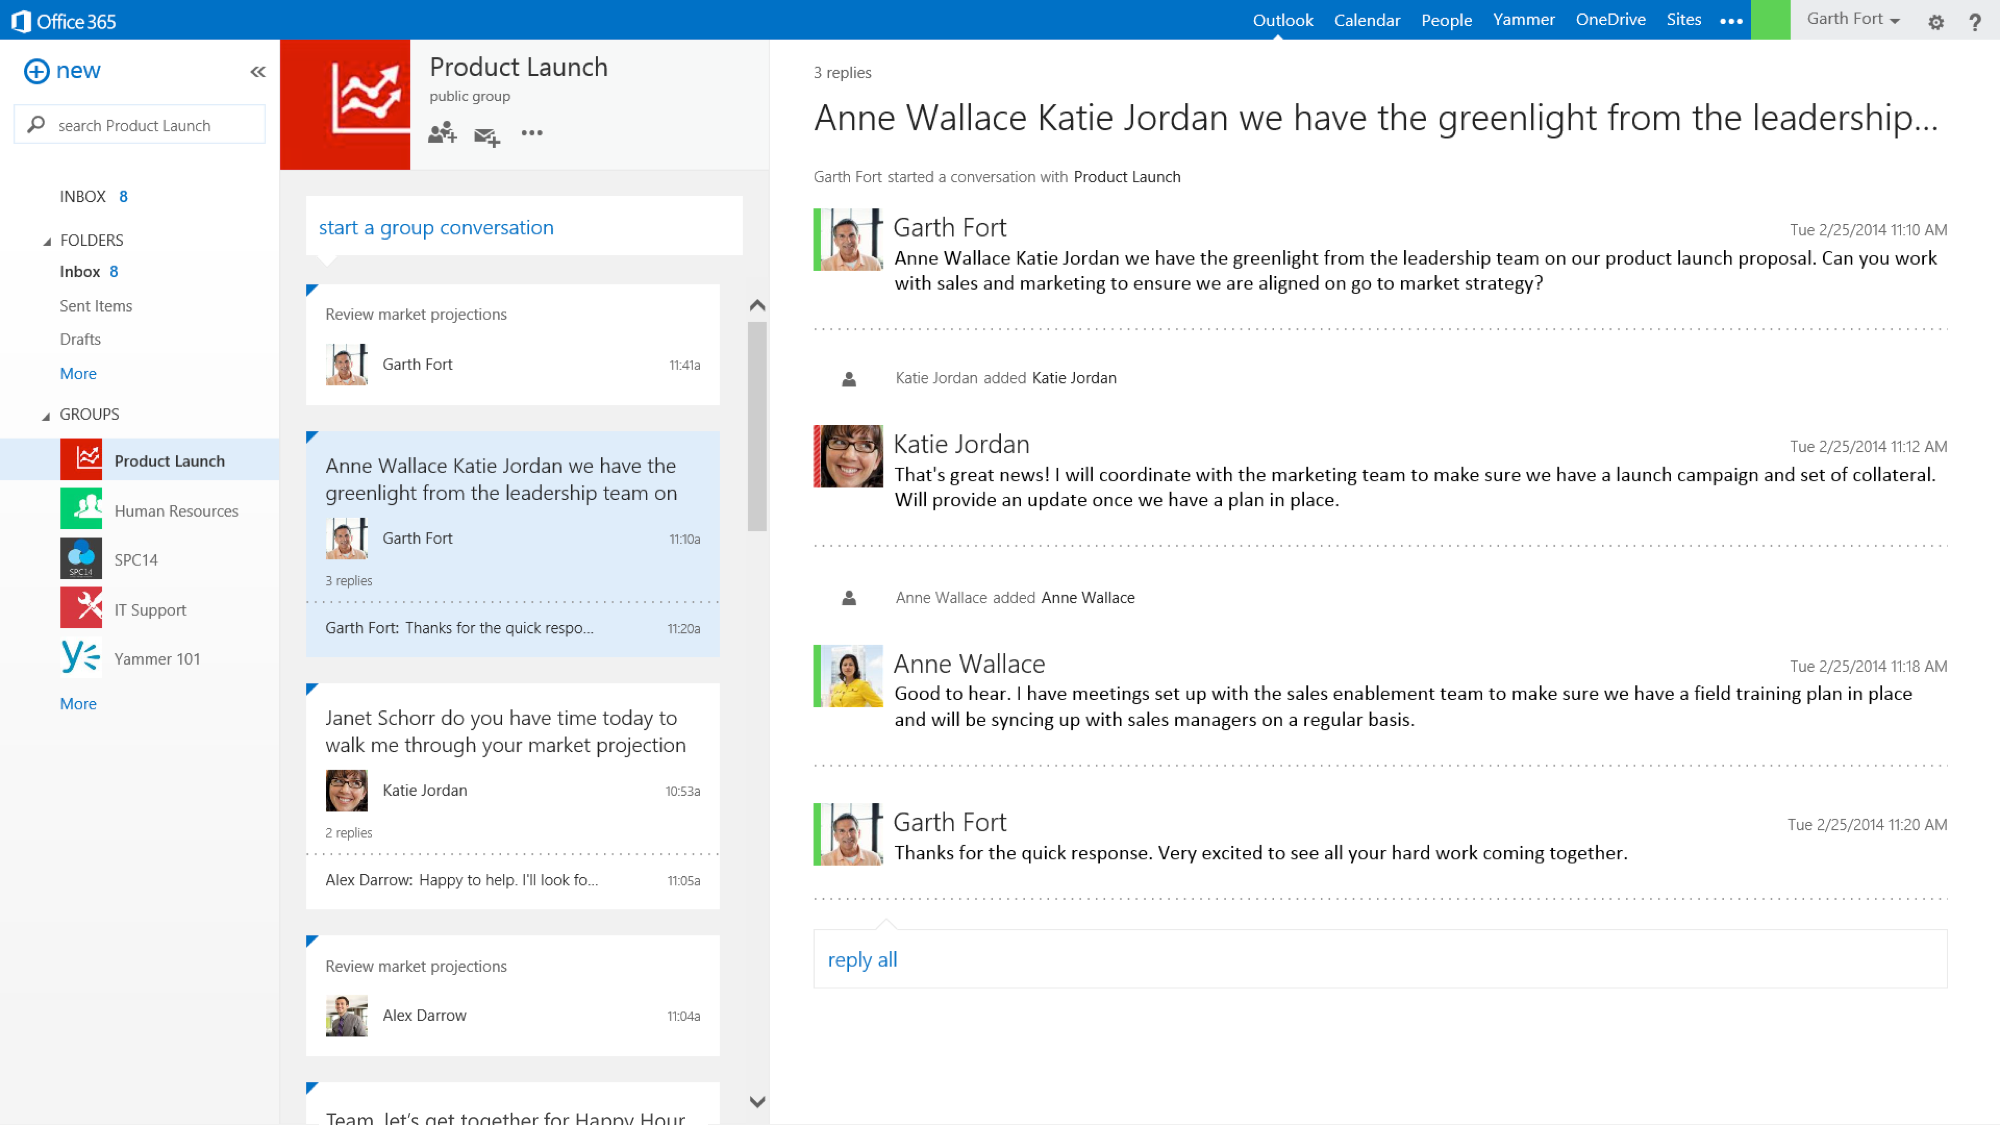 Groups - Outlook View - Creating a Microsoft Group automatically provisions an inbox in Outlook Web App